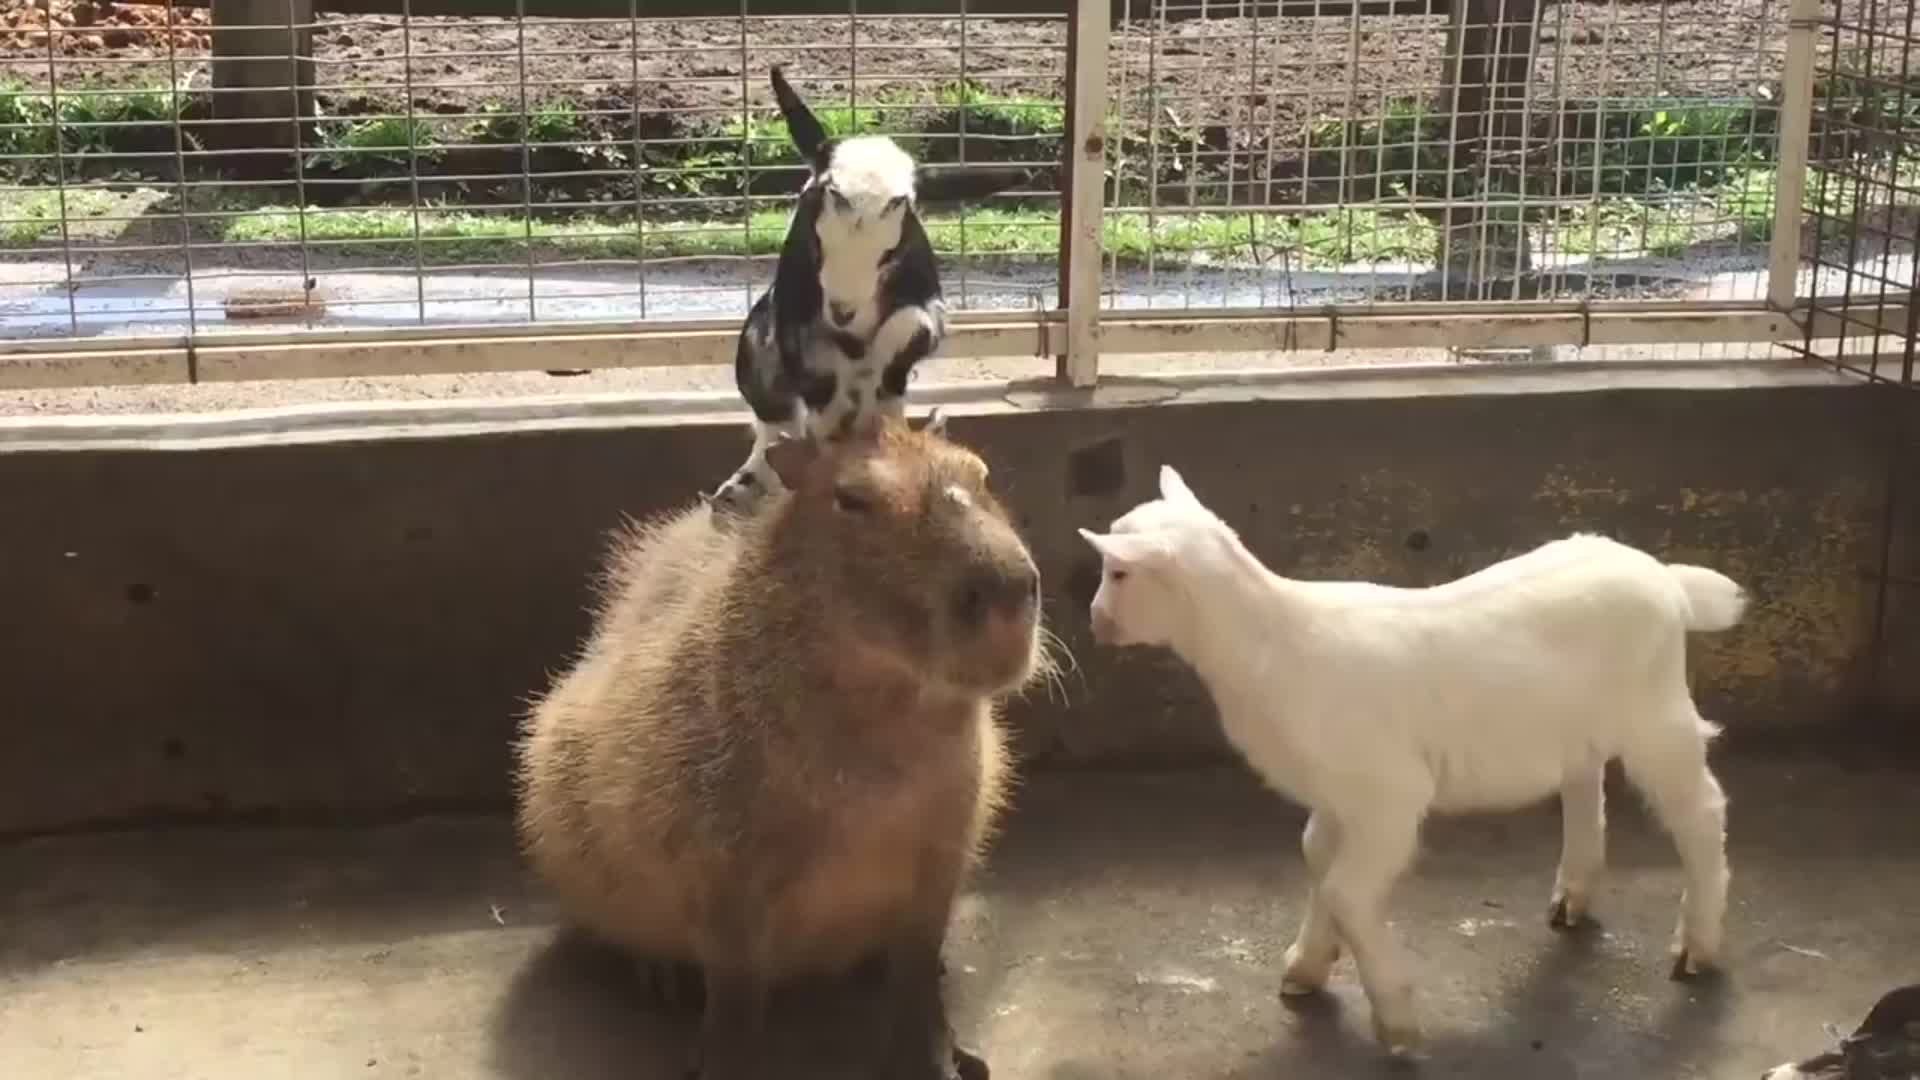 capybaras, goats, This capybara is the world's most chilled animal GIFs